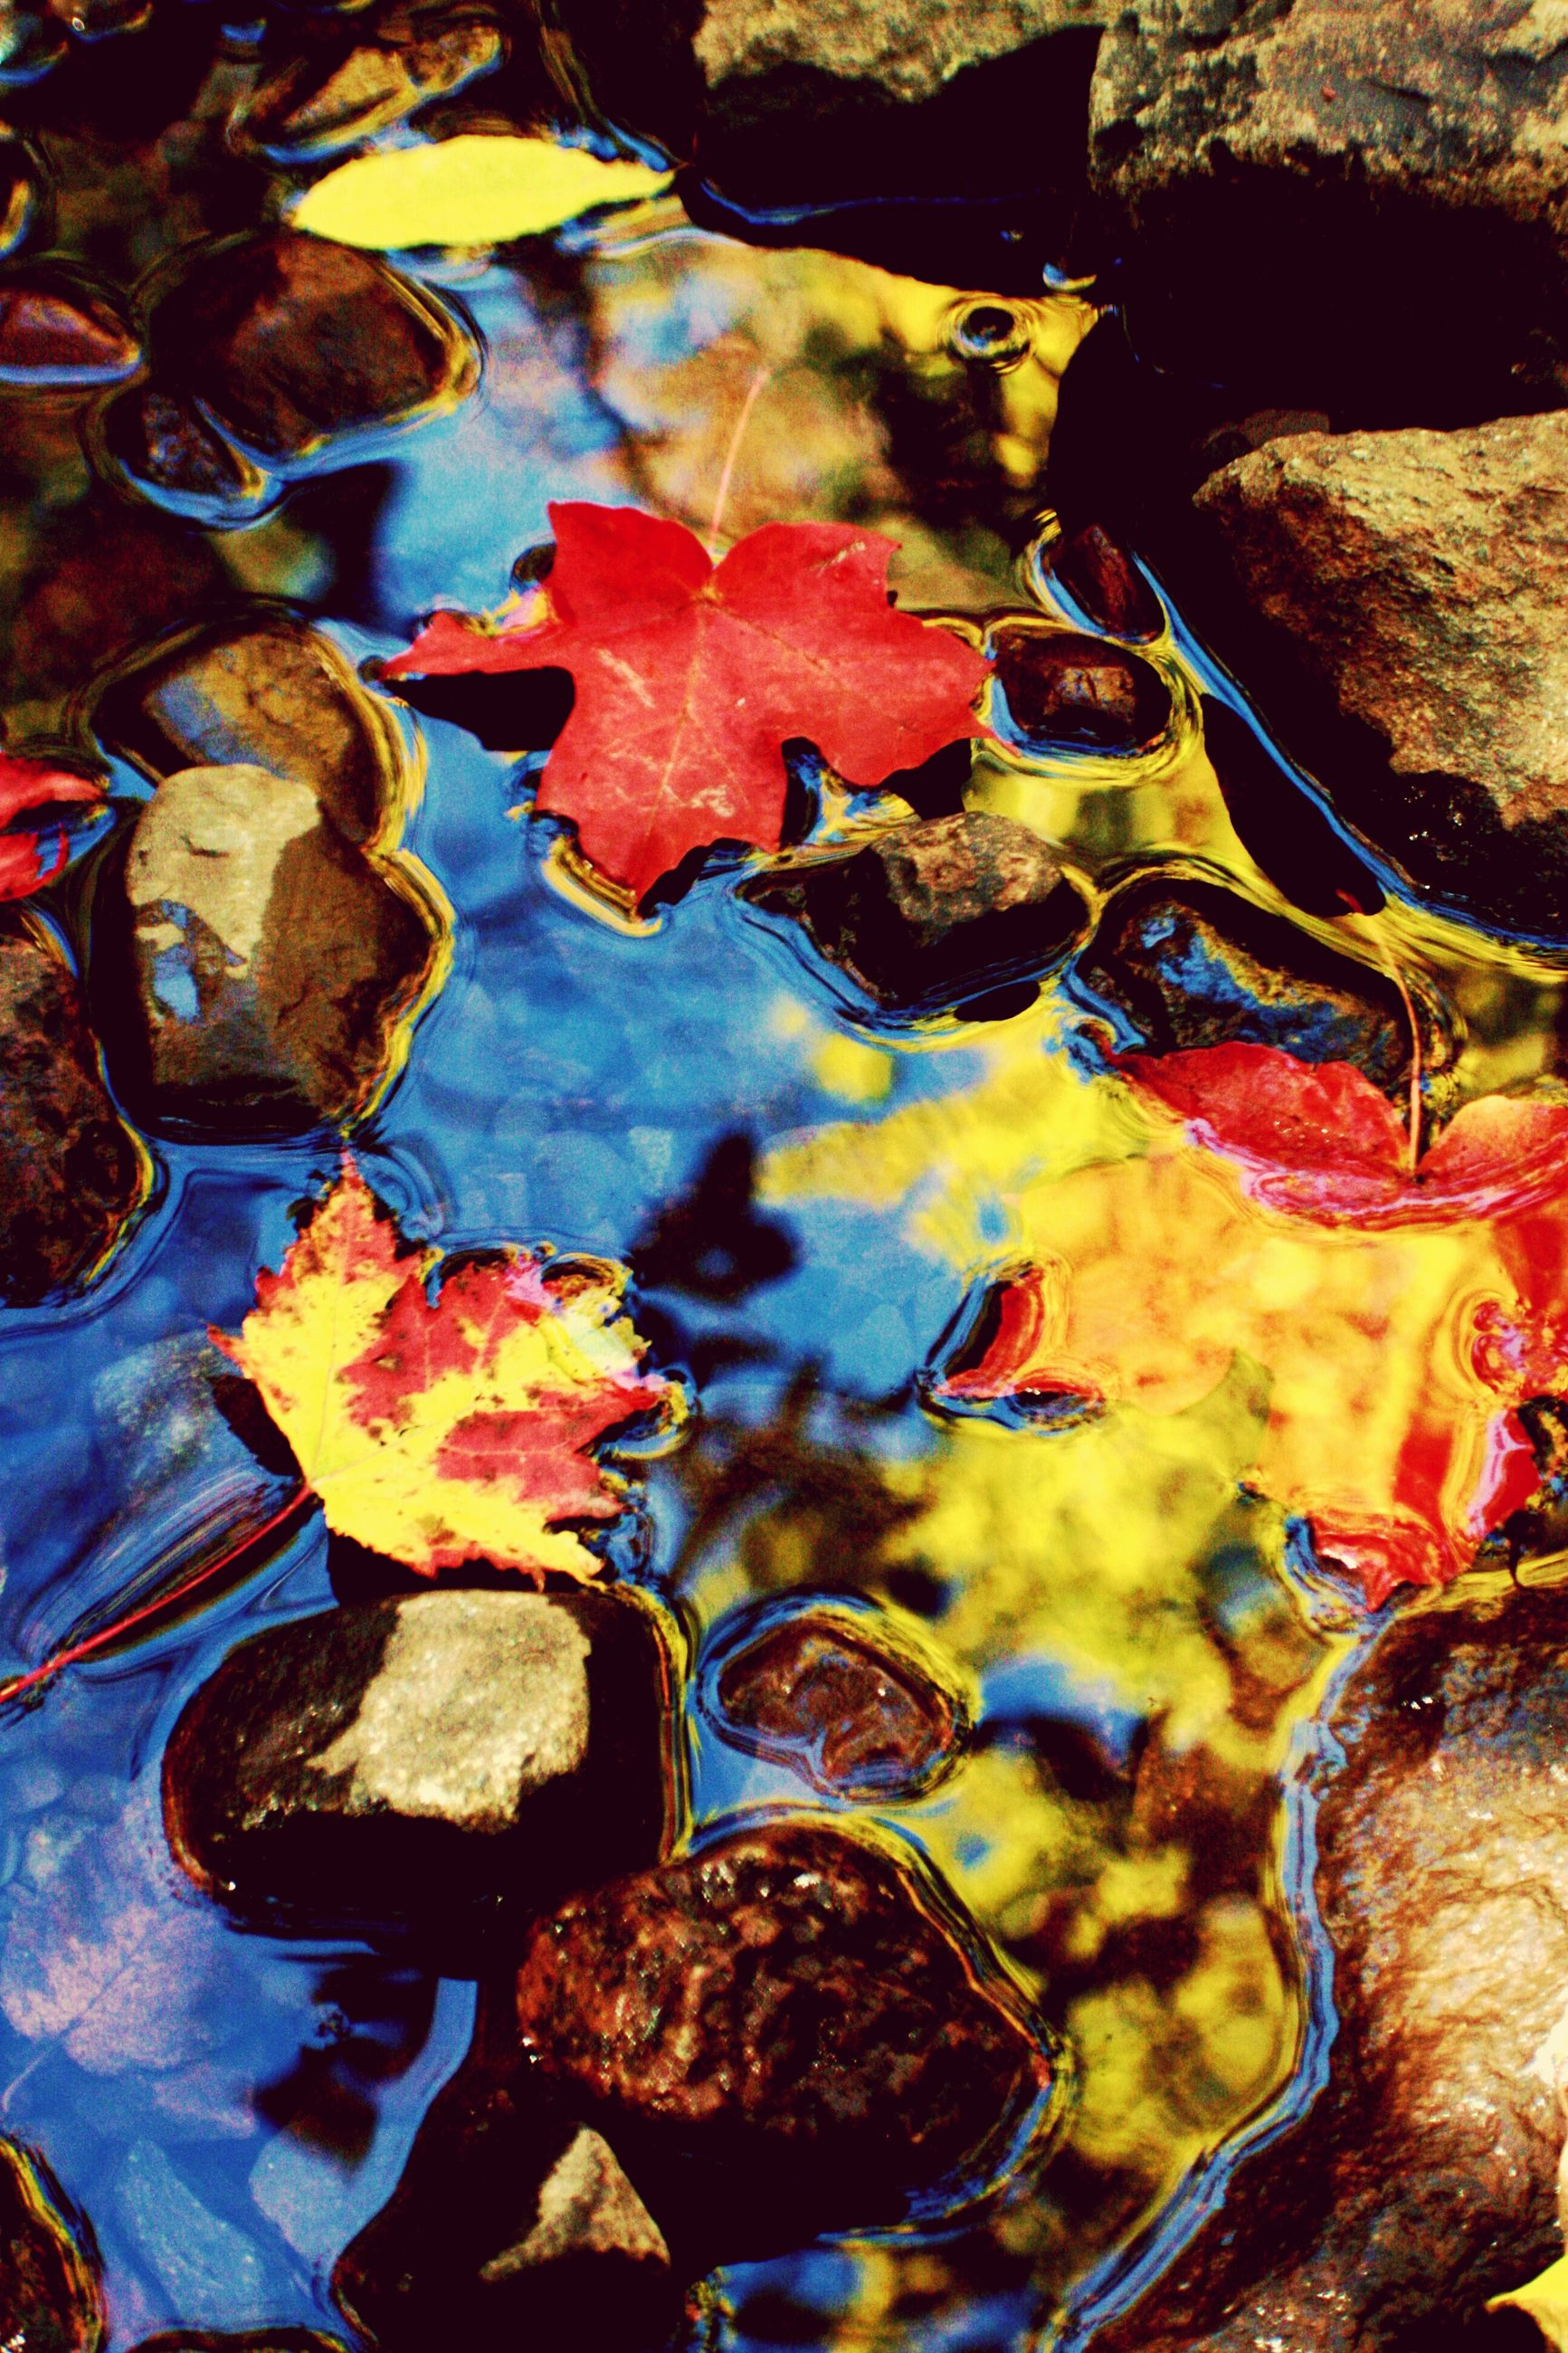 autumn, leaf, change, backgrounds, full frame, high angle view, fallen, leaves, nature, close-up, dry, orange color, natural pattern, textured, season, rock - object, no people, multi colored, indoors